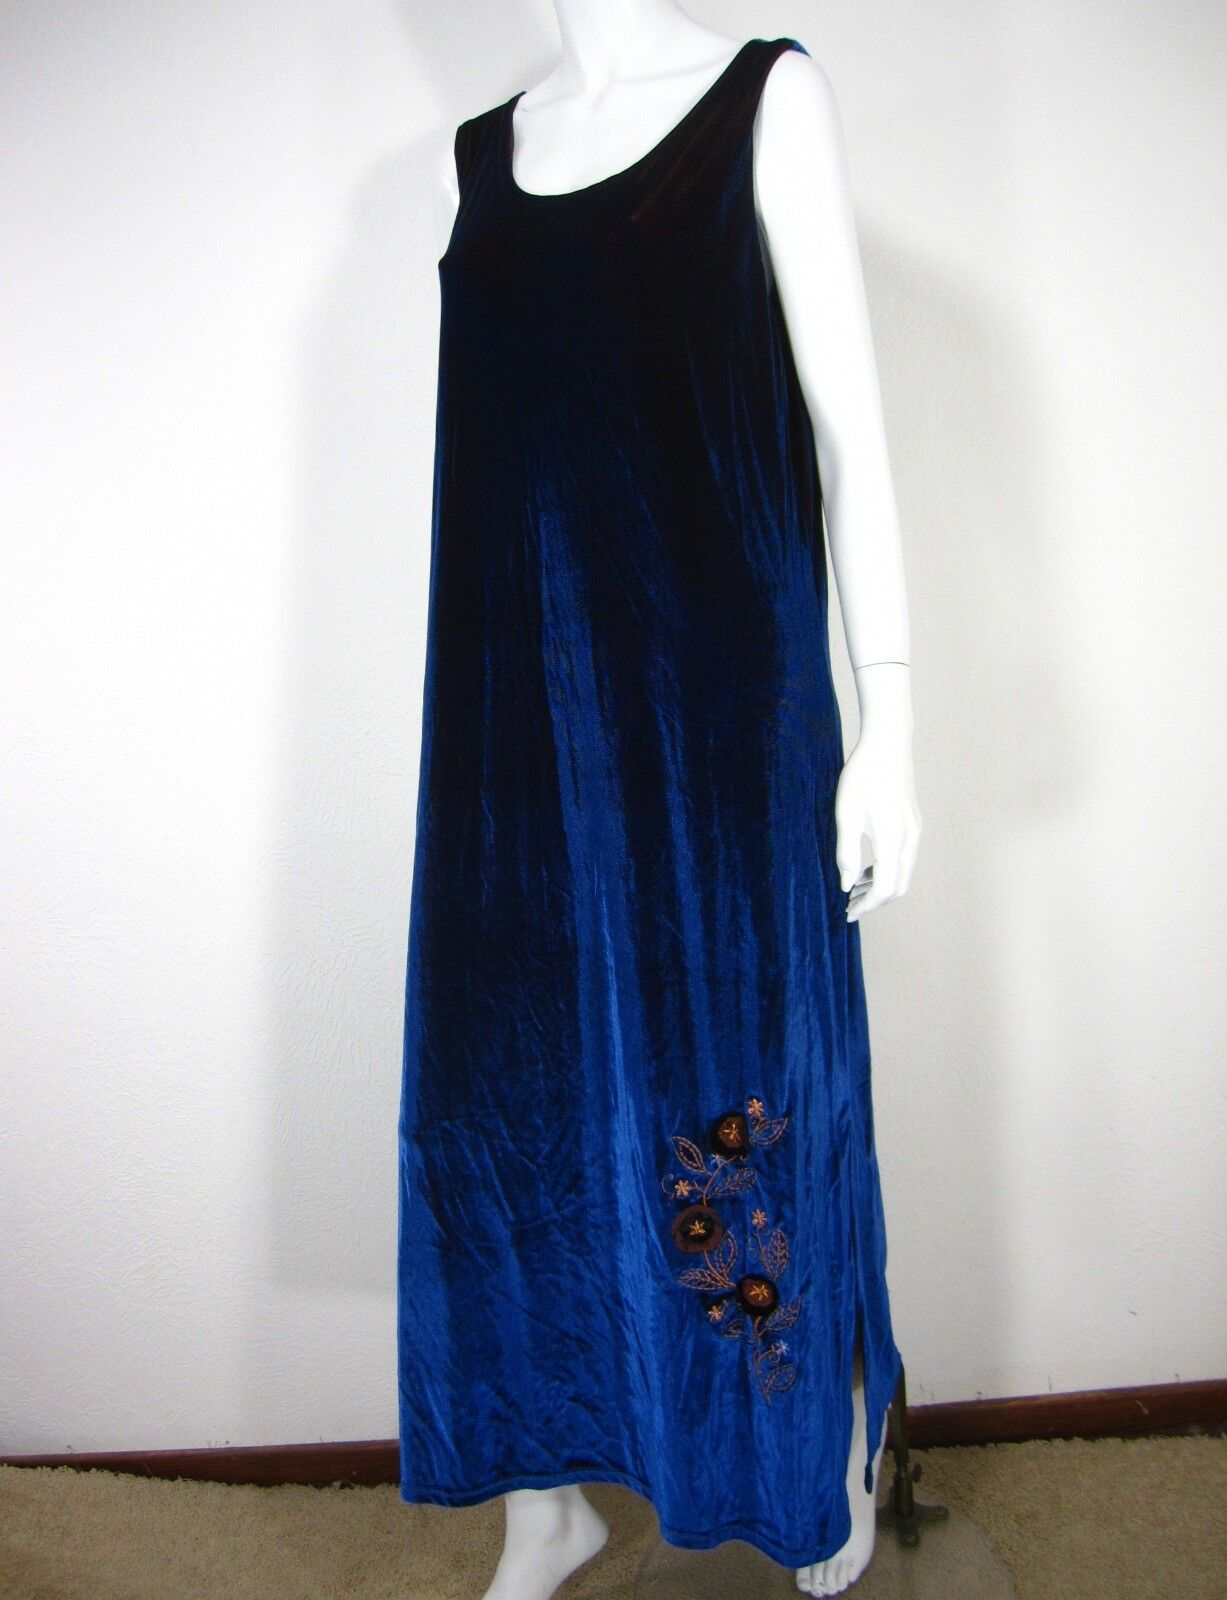 df211b4583 ISABELLA By By By Shawn Vintage Sleeveless Velour Dress Size L Large Solid  bluee Maxi 82aa05